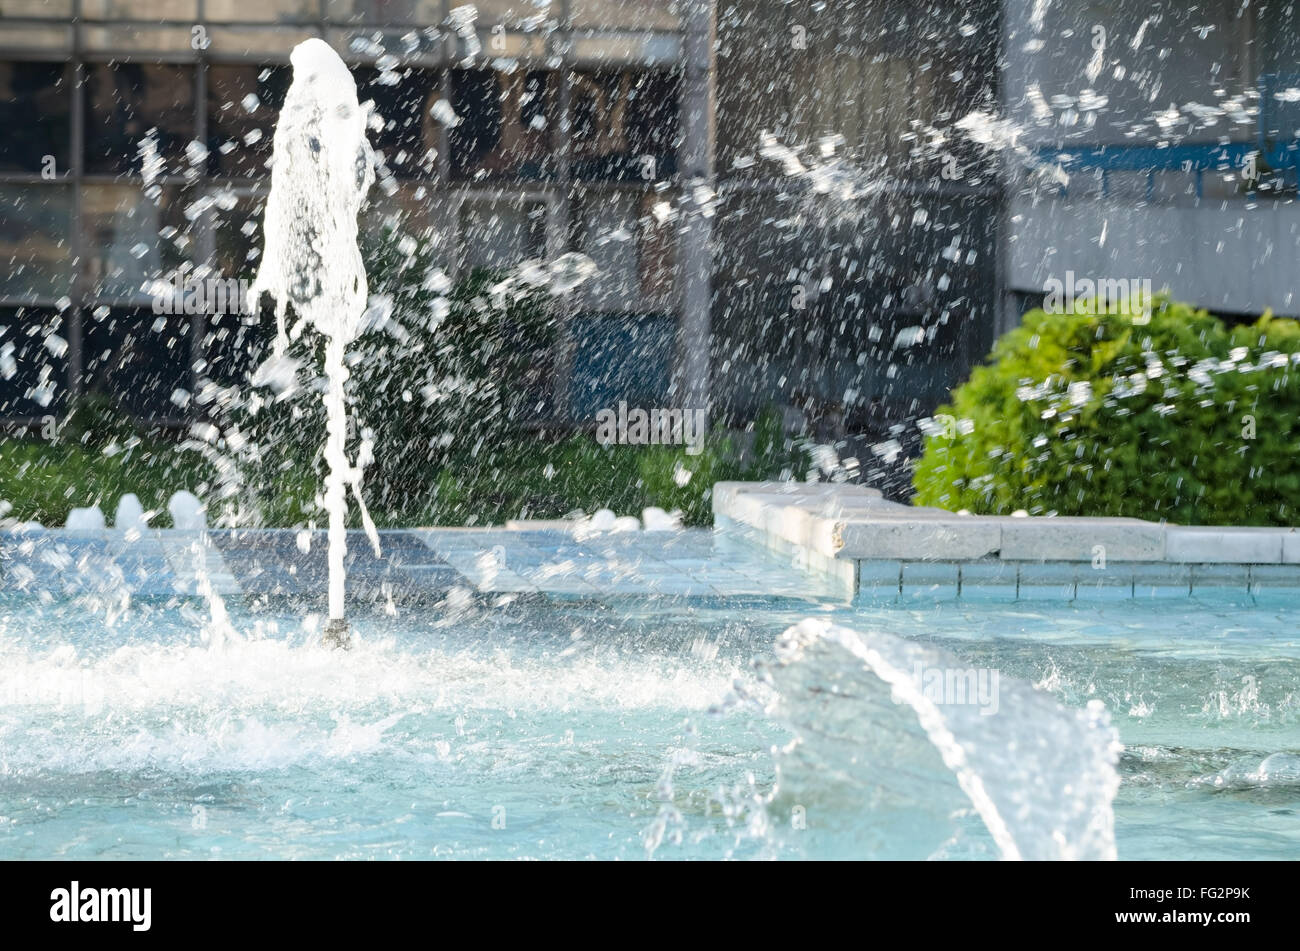 Splashing Water in City Fountain in the Summer Daytime - Stock Image